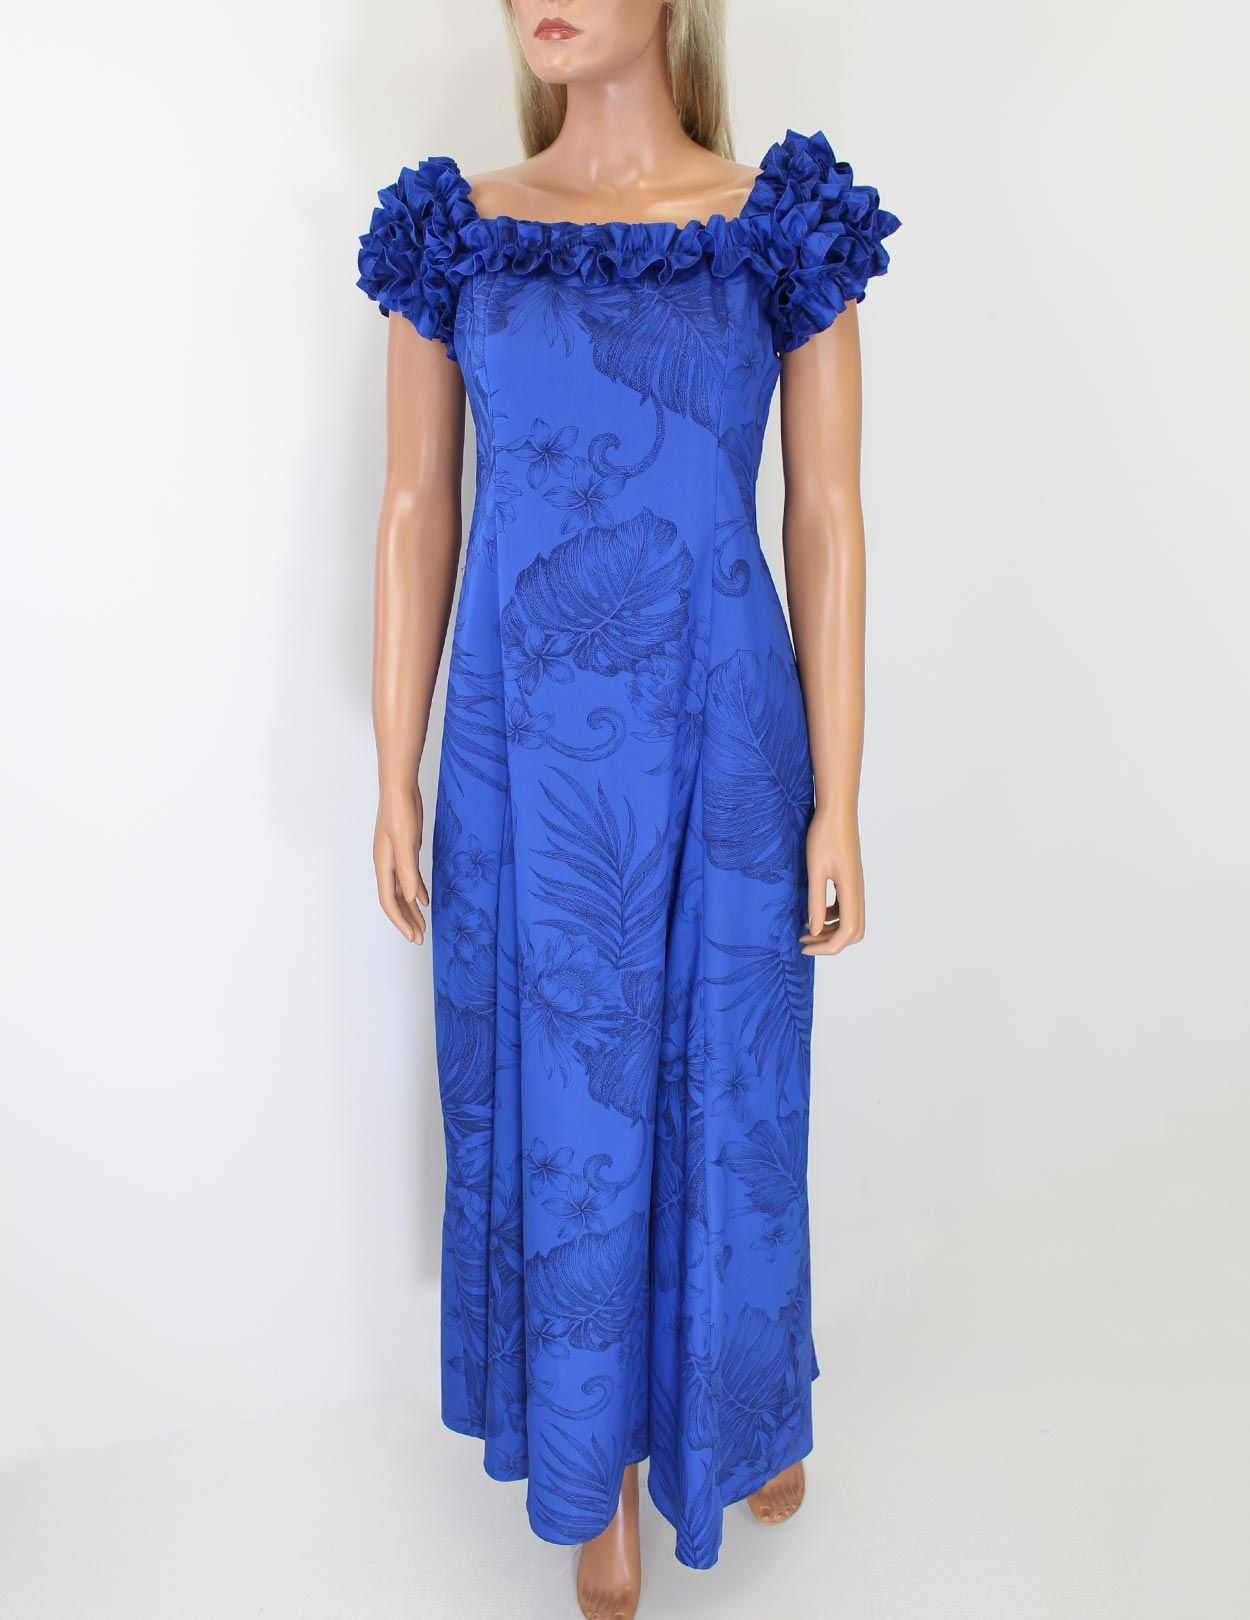 Check out the deal on Blue Long Ruffle Muumuus Dress Monstera Ceres ...